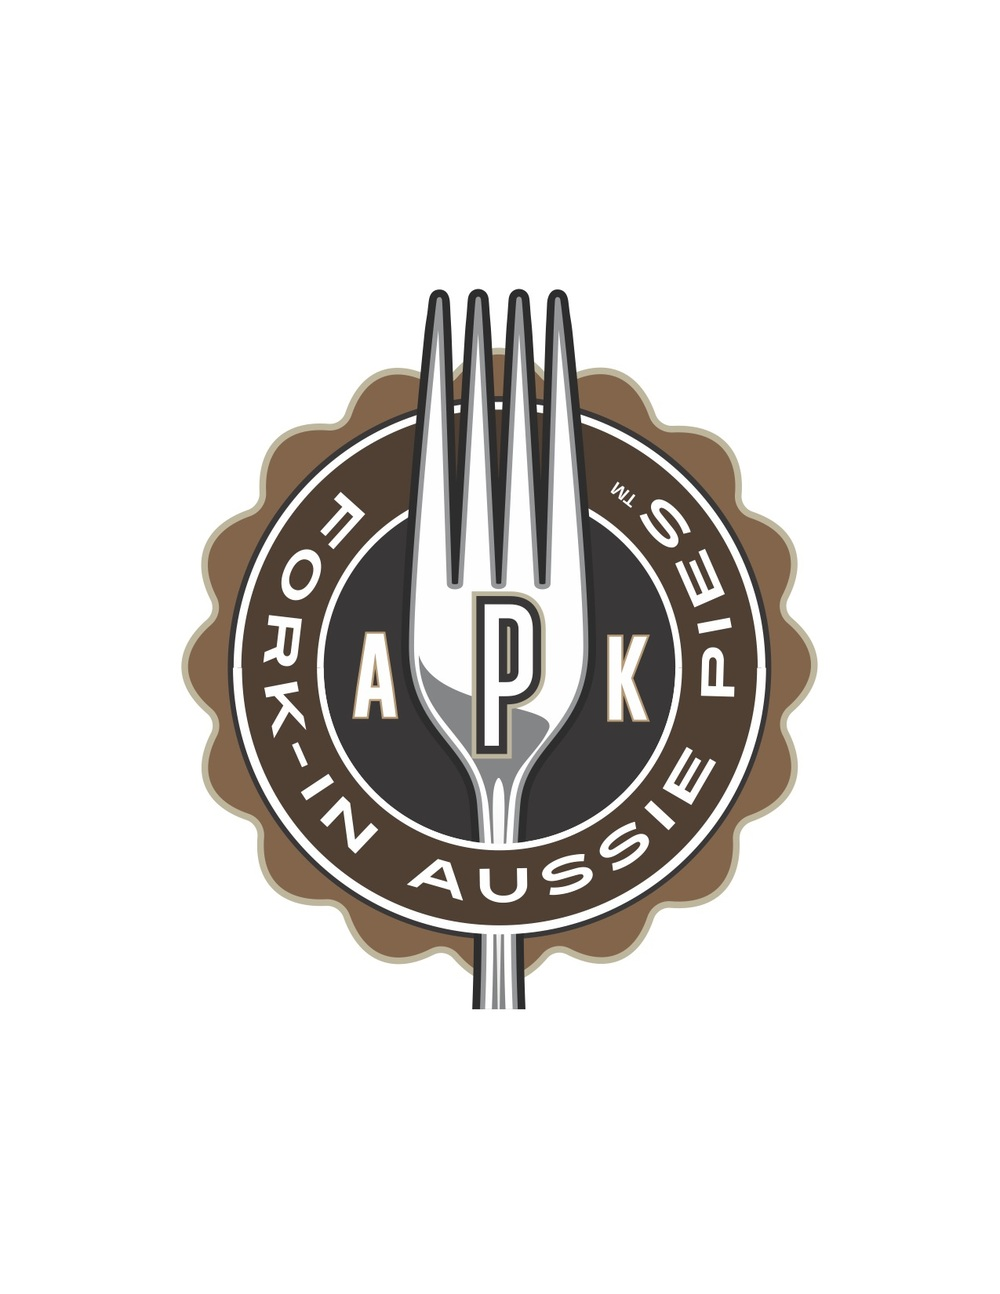 Fork-In Aussie Pies® creates and caters gourmet savory pies ...